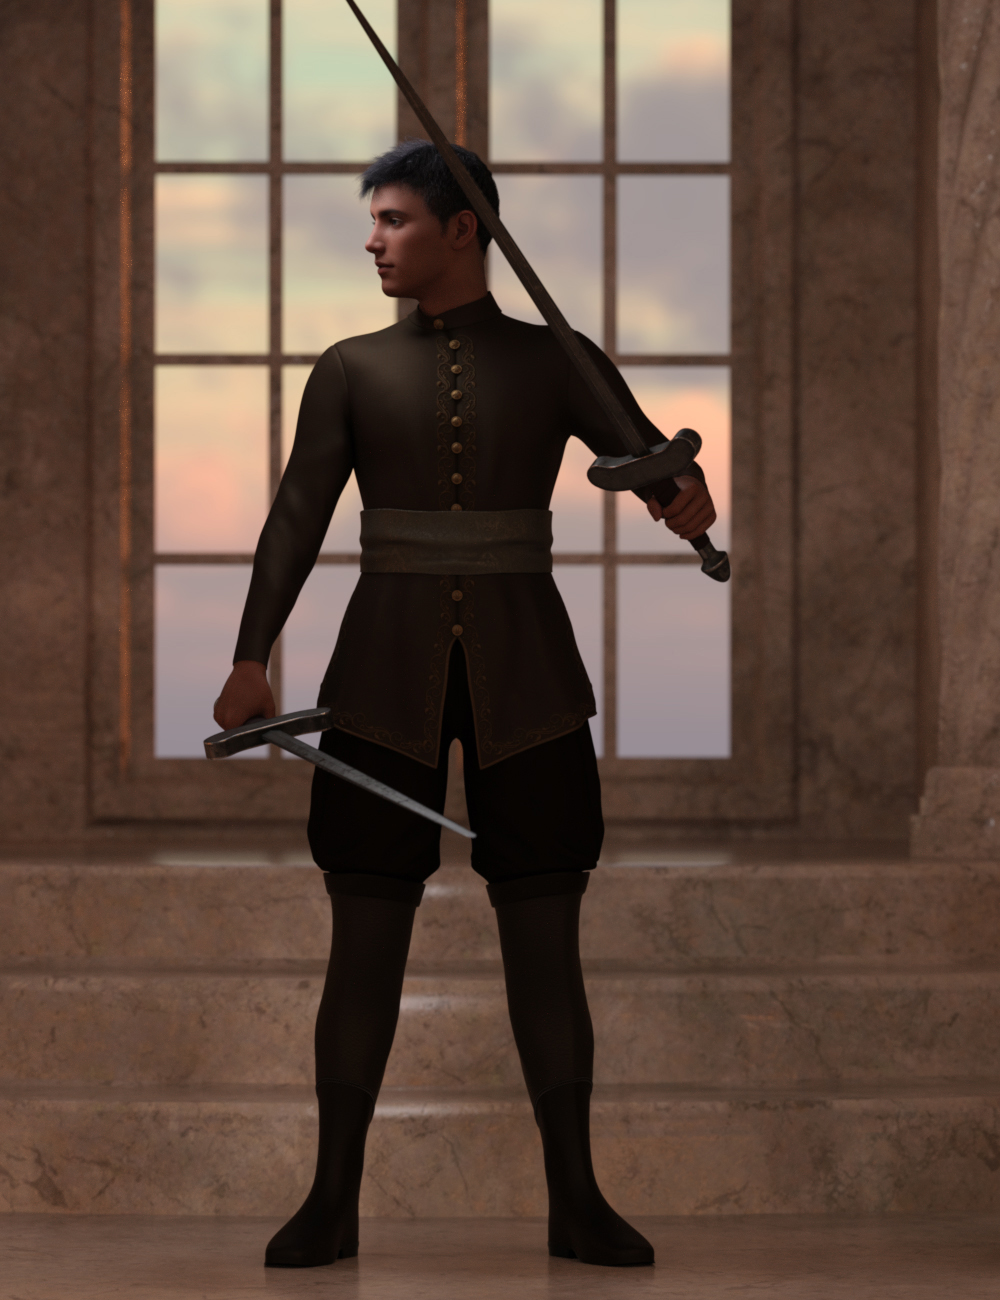 Charming Poses for Genesis 8.1 Male by: Ensary, 3D Models by Daz 3D